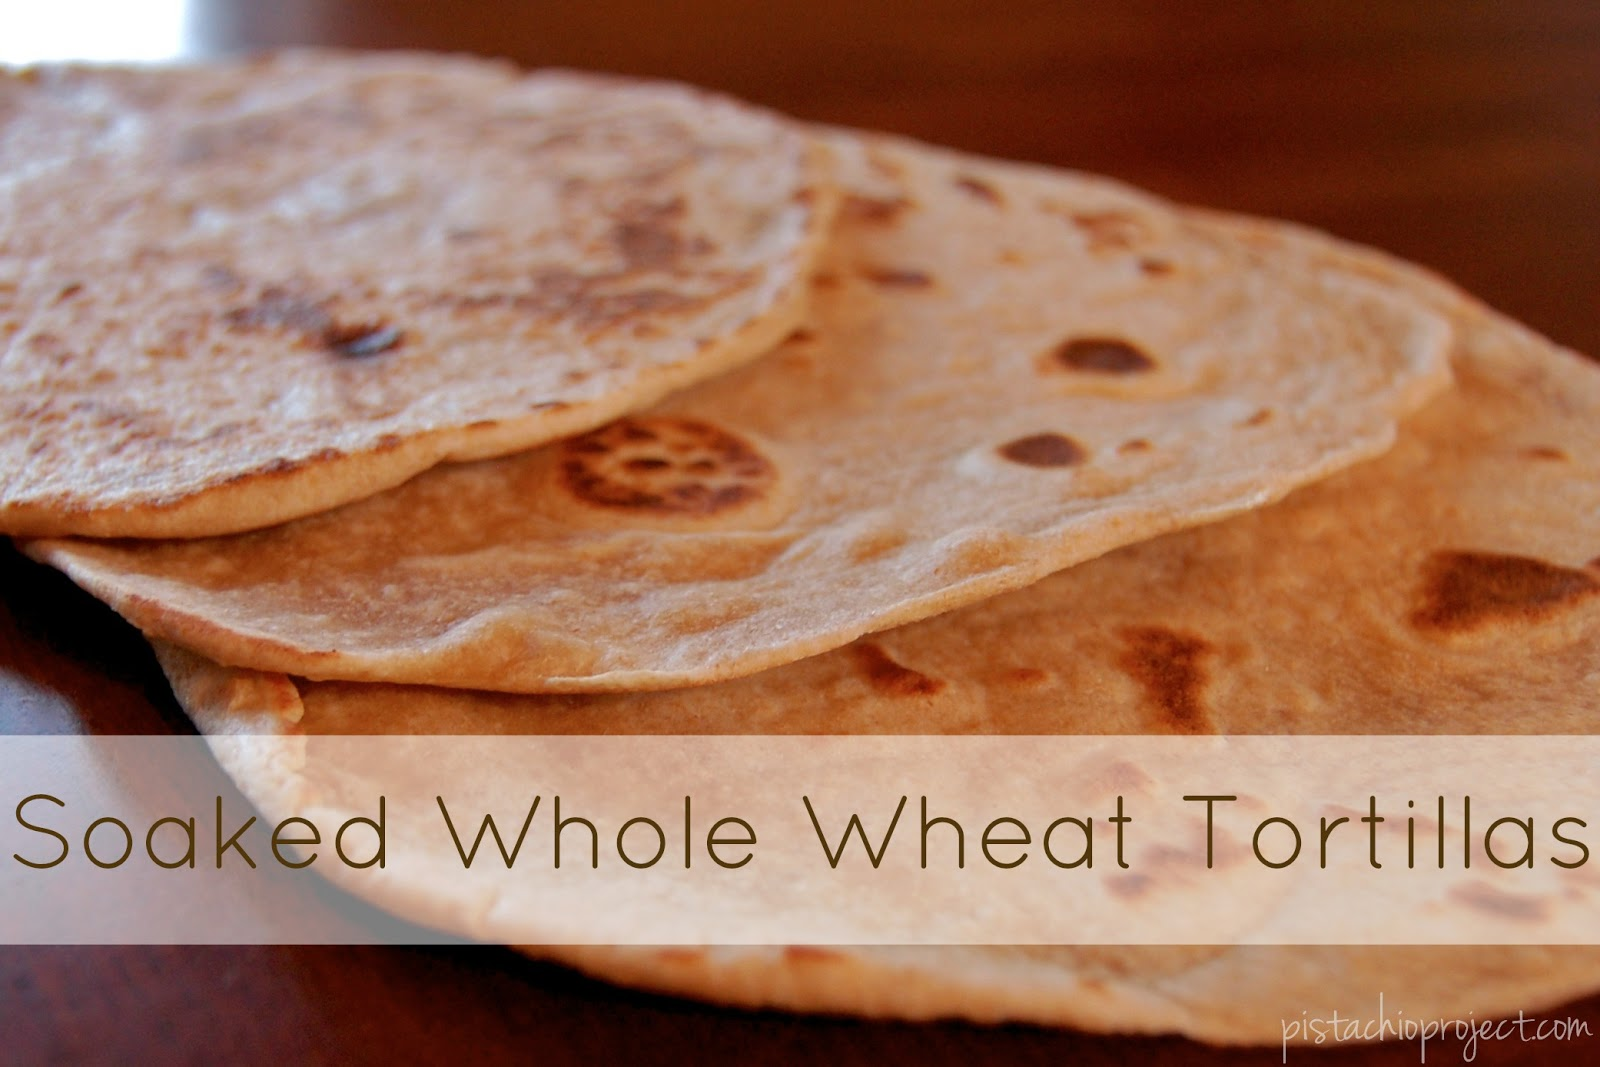 Soaked Whole Wheat Tortillas